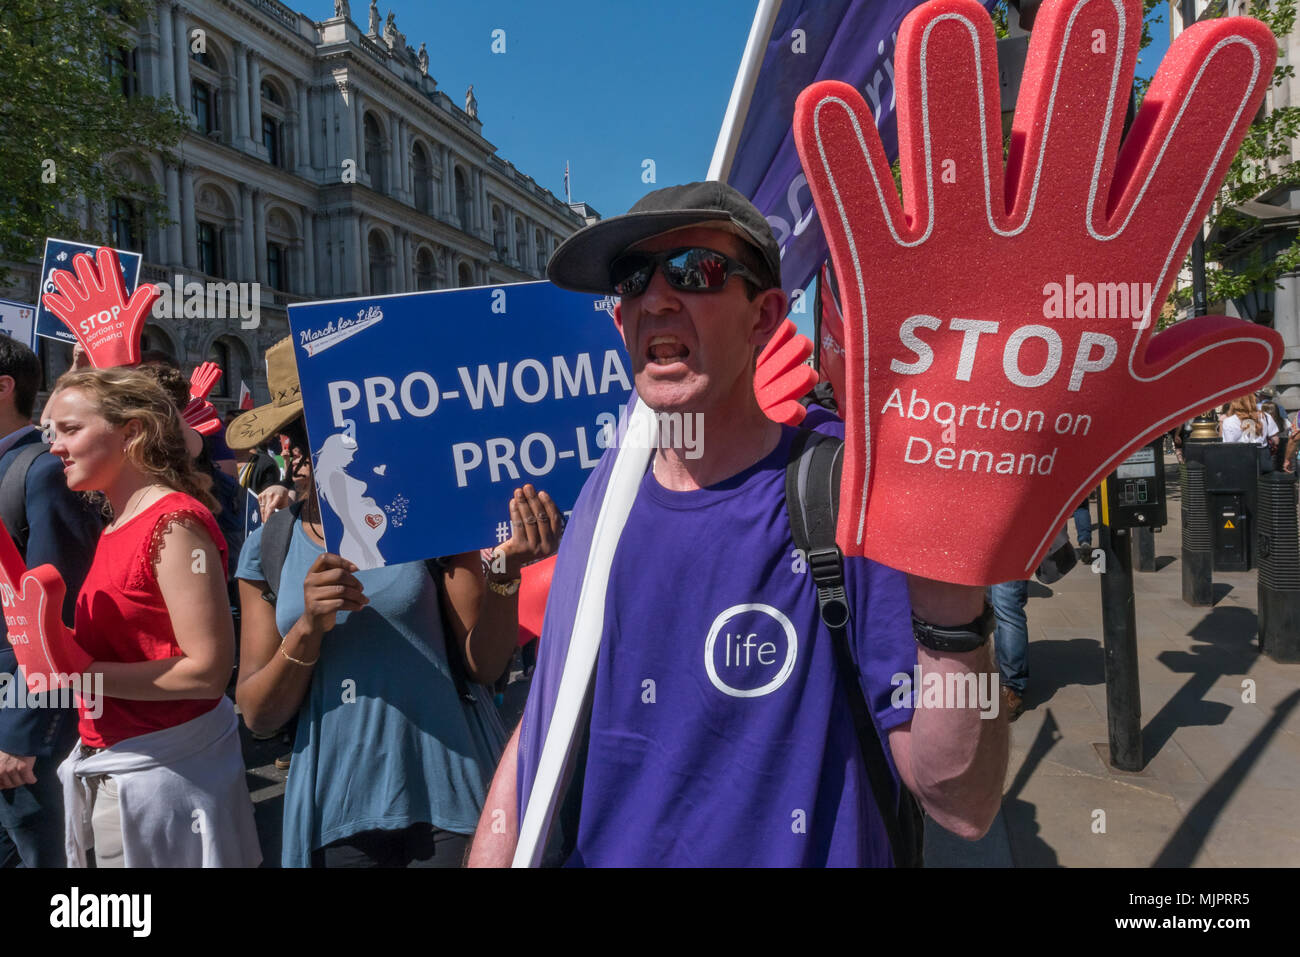 London, UK. 5th May 2018. The March for Life UK, a largely Catholic event calling for an end to abortions marches down Whitehall to a rally in Parliament Square. Opposed to abortion they aim to raise awareness of the hurt and damage that abortion causes and to unite all the pro-life groups in the UK to help bring to an end what it calls the greatest violation to human rights in history. Credit: Peter Marshall/Alamy Live News - Stock Image